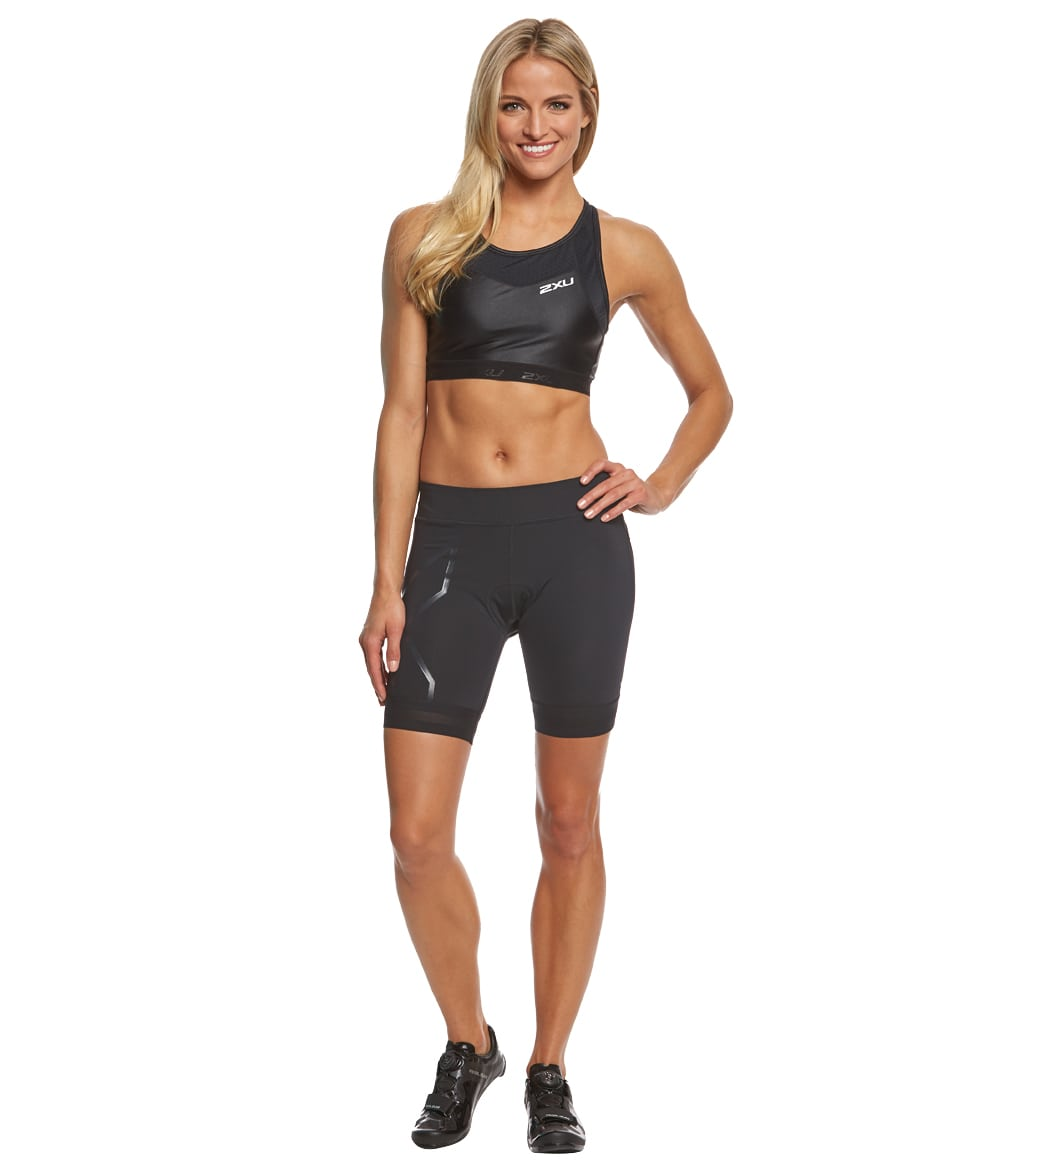 2XU Women s Compression Tri Short at SwimOutlet.com - Free Shipping 6b00a483701a9